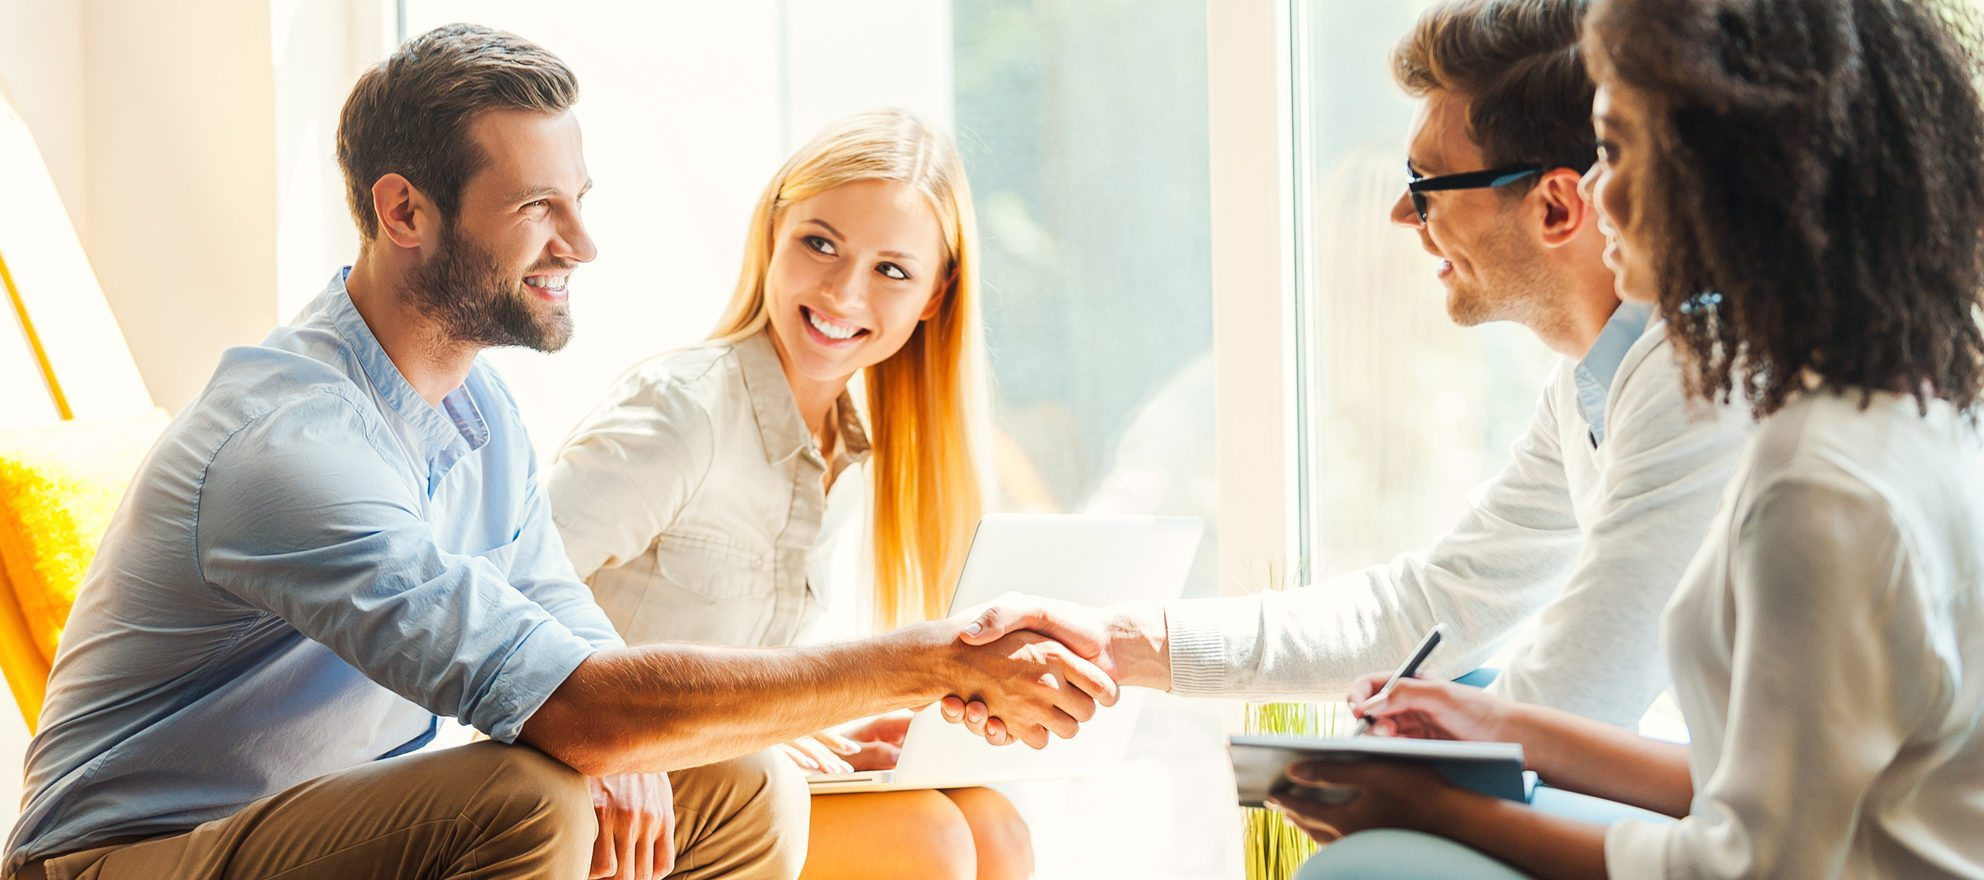 How can you master leadership? Learn to give a compliment